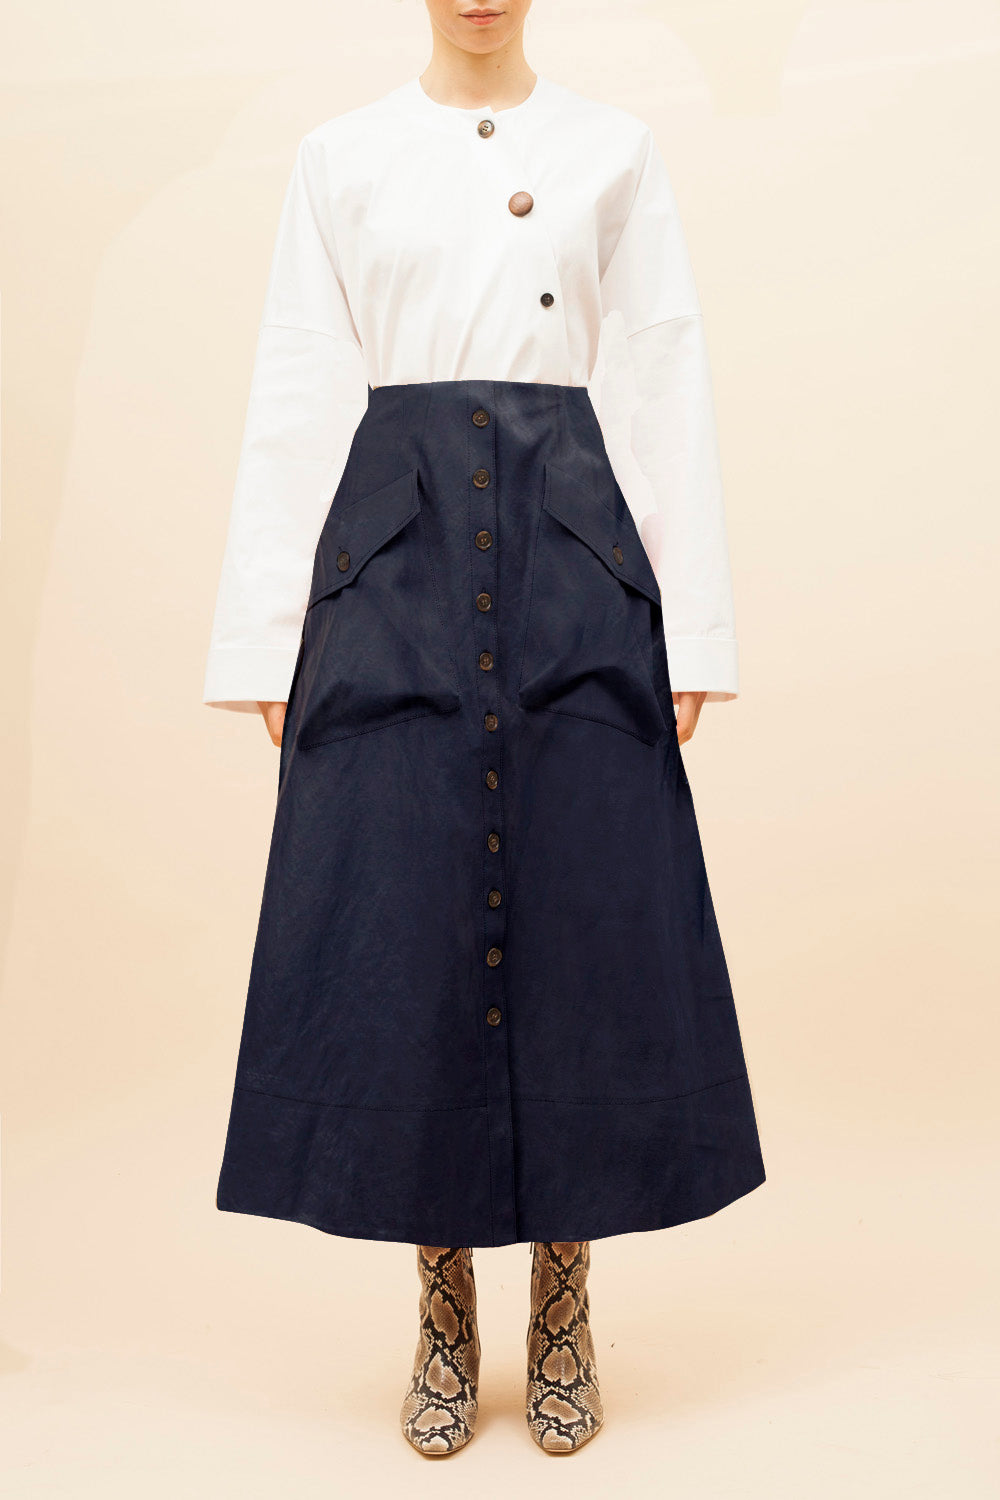 Joanna Skirt Faux Leather Dark Navy - SPECIAL PRICE